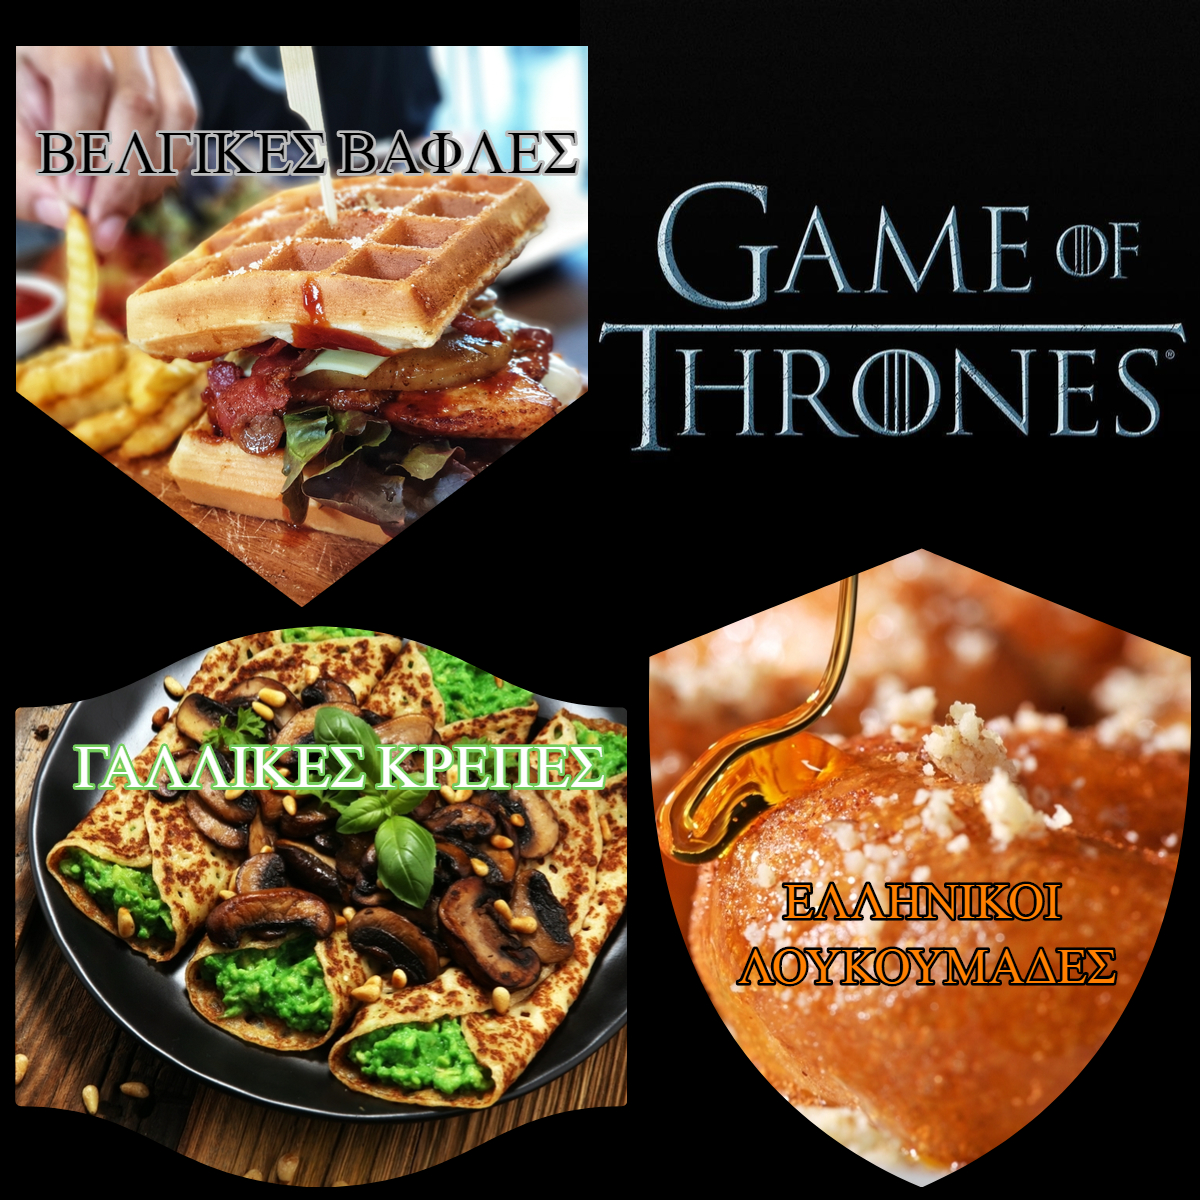 GAME OF THRONES - ΤΜΗΜΑ: ΓΑΛΛΙΚΕΣ CREPES